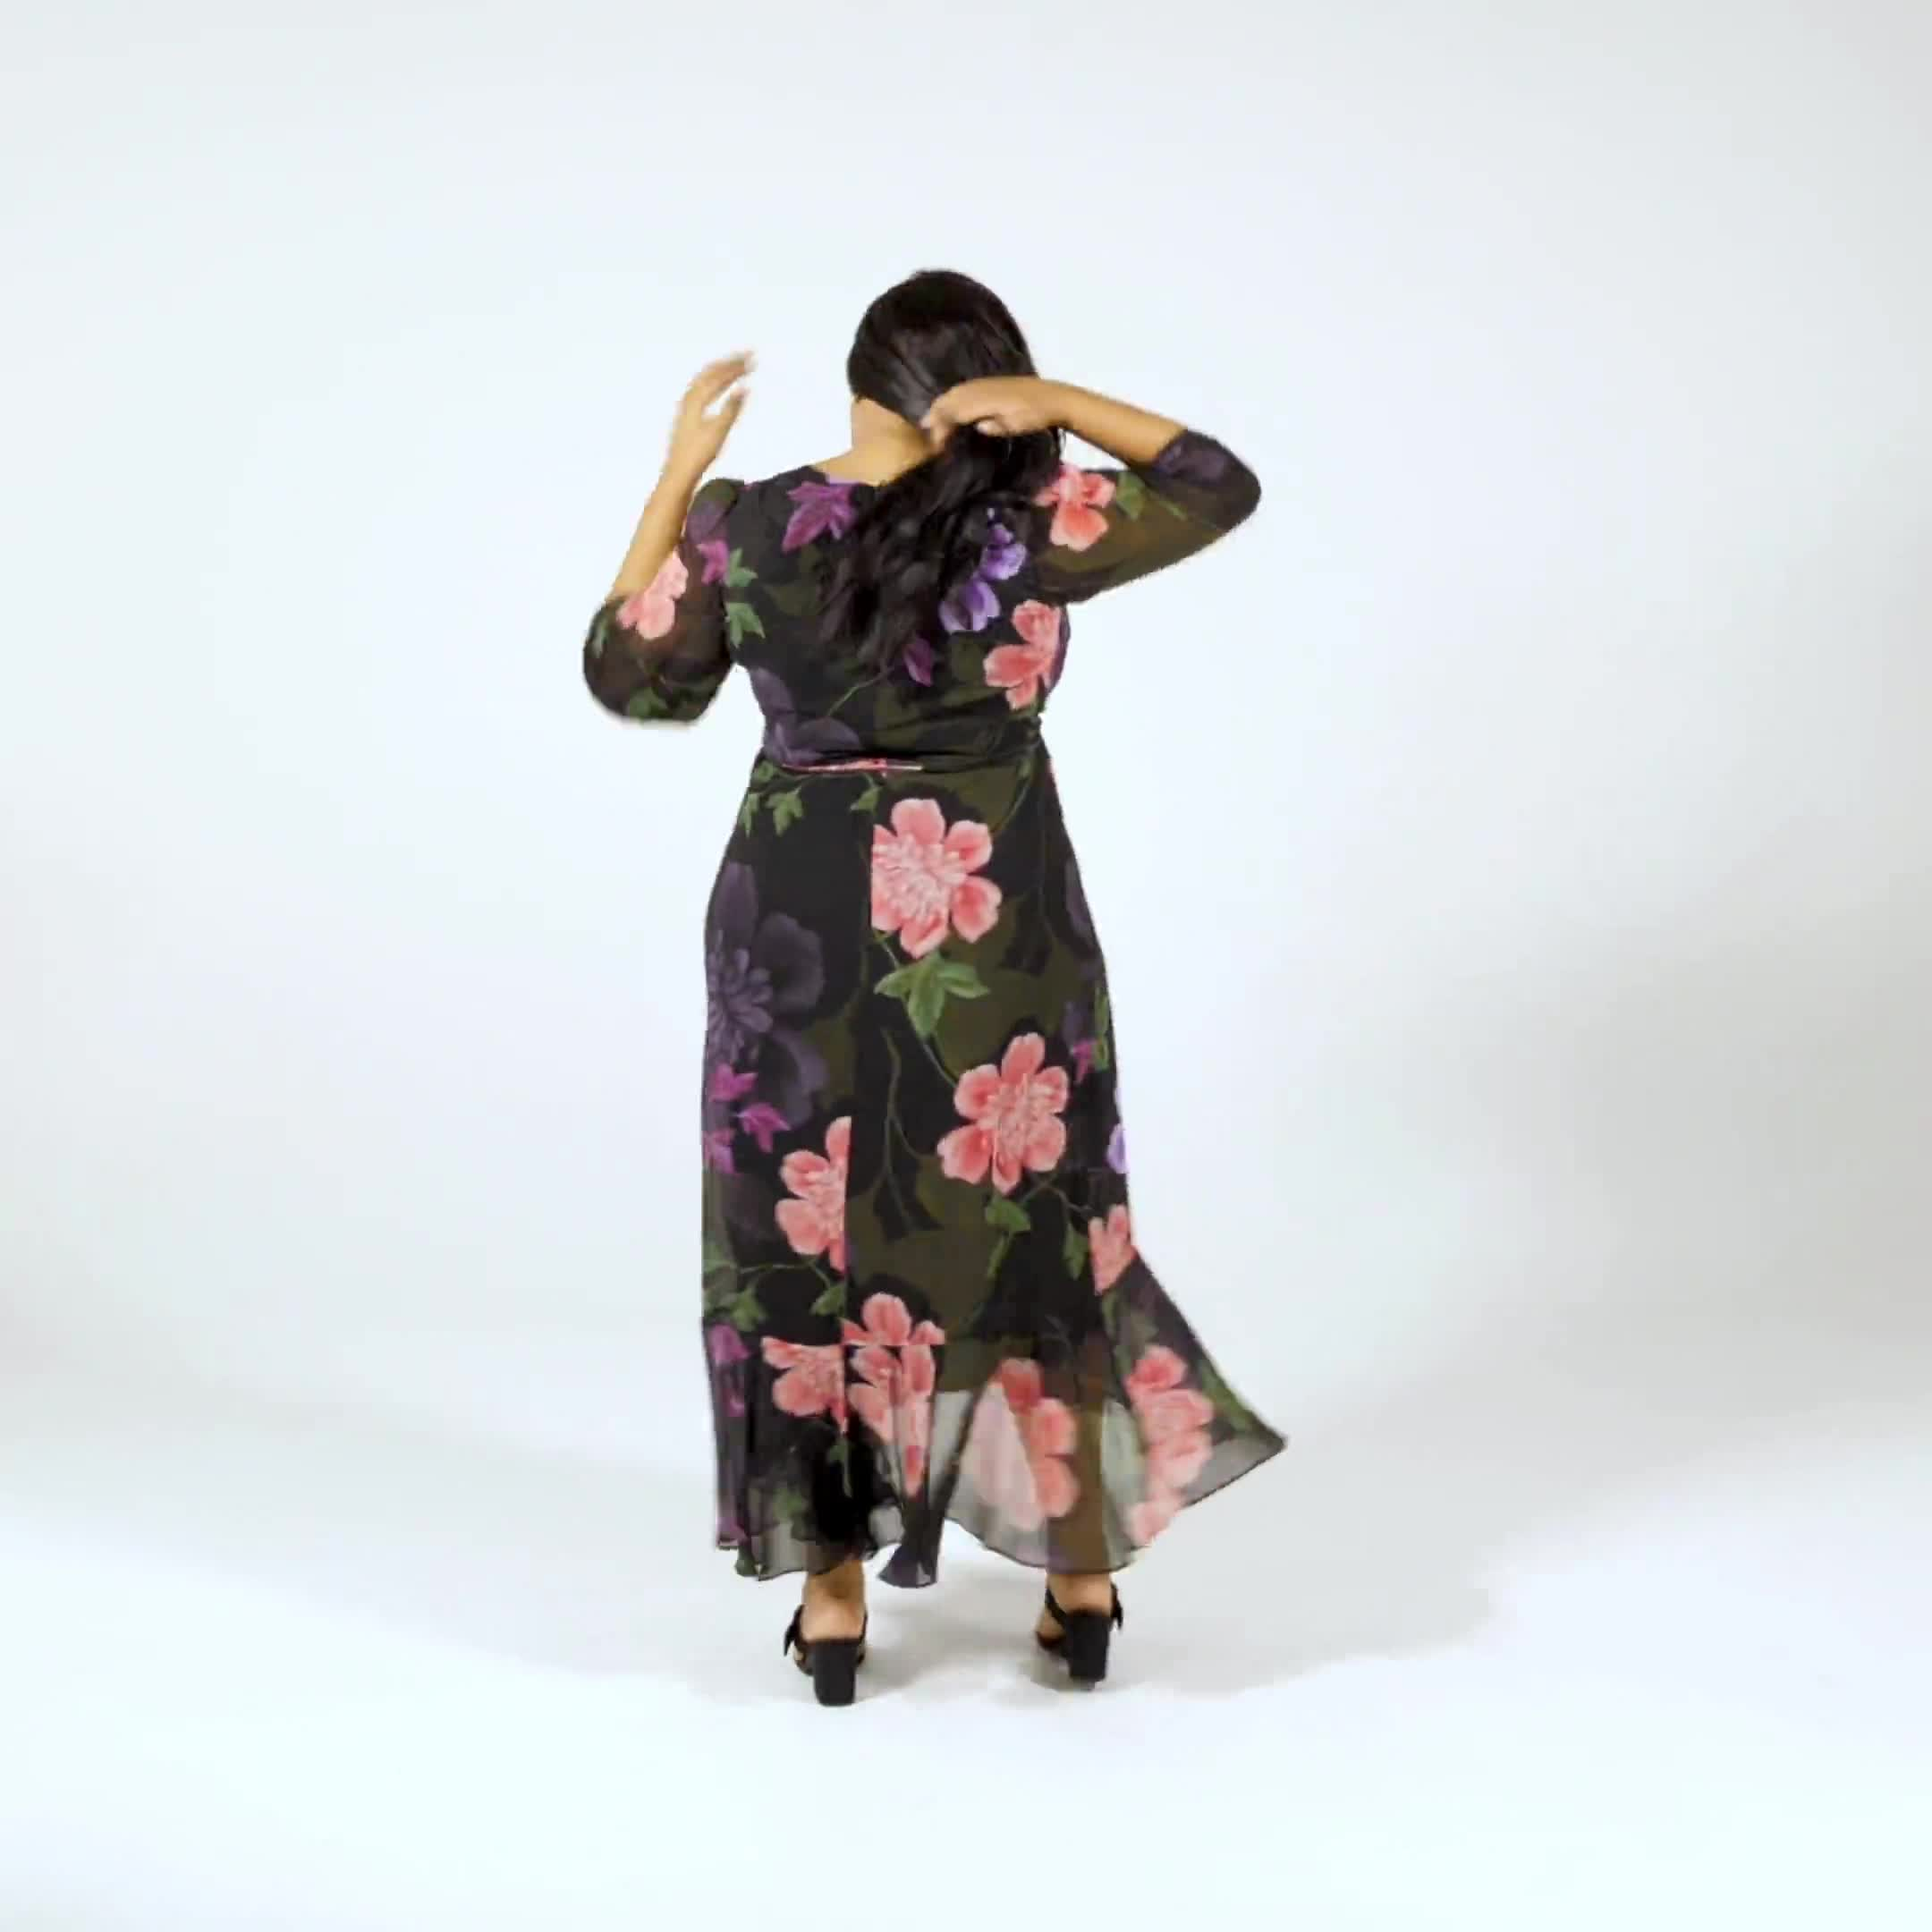 Large Floral Ruffle Dress - Plus - Video